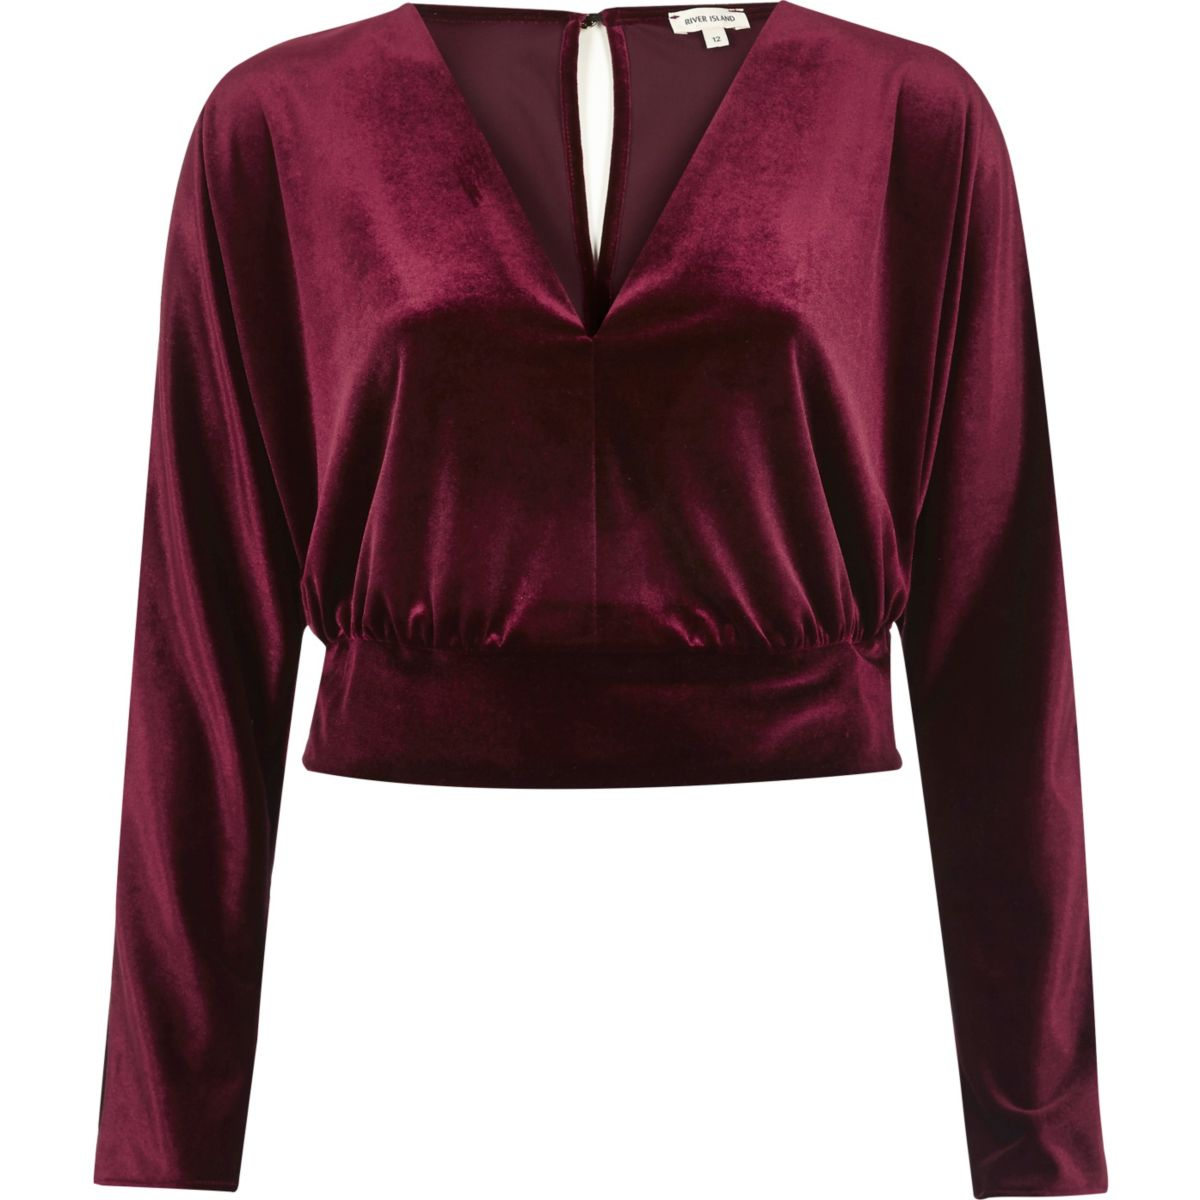 Burgundy velvet wrap crop top